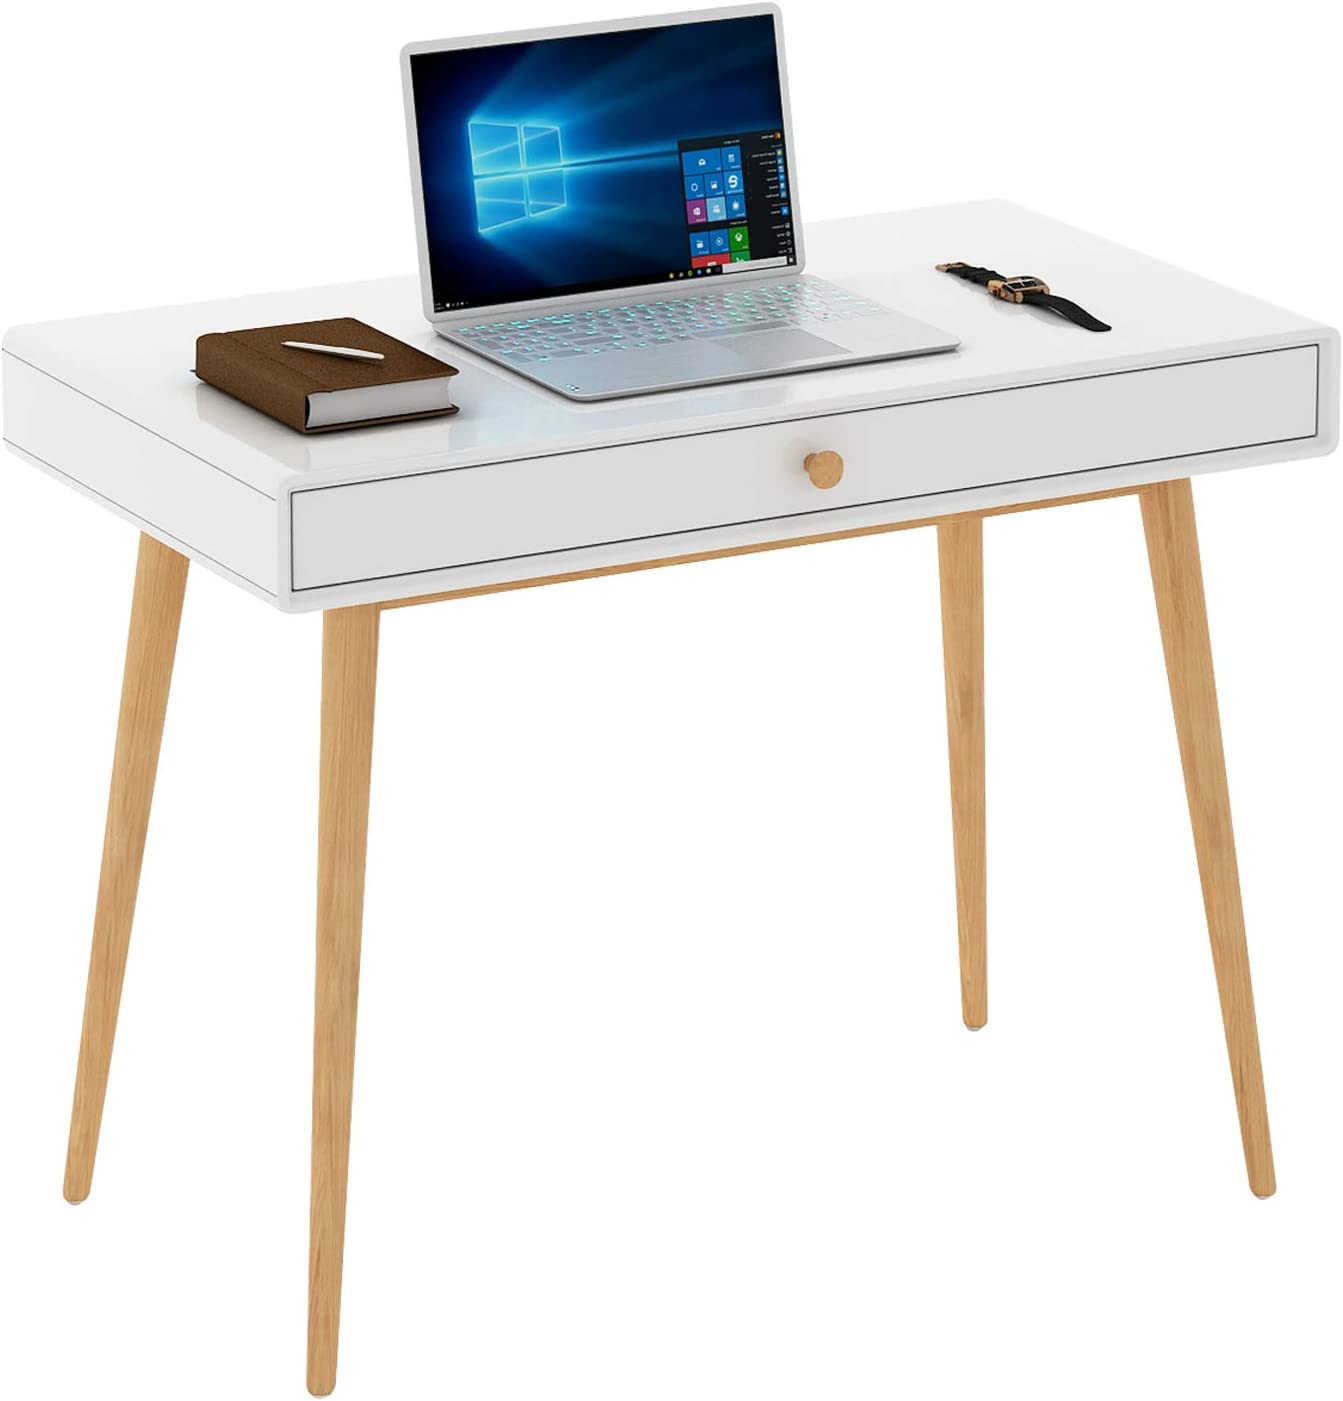 Home Office Writing Desk Computer Desk with Drawer, Simple Modern Makeup Vanity Table, White